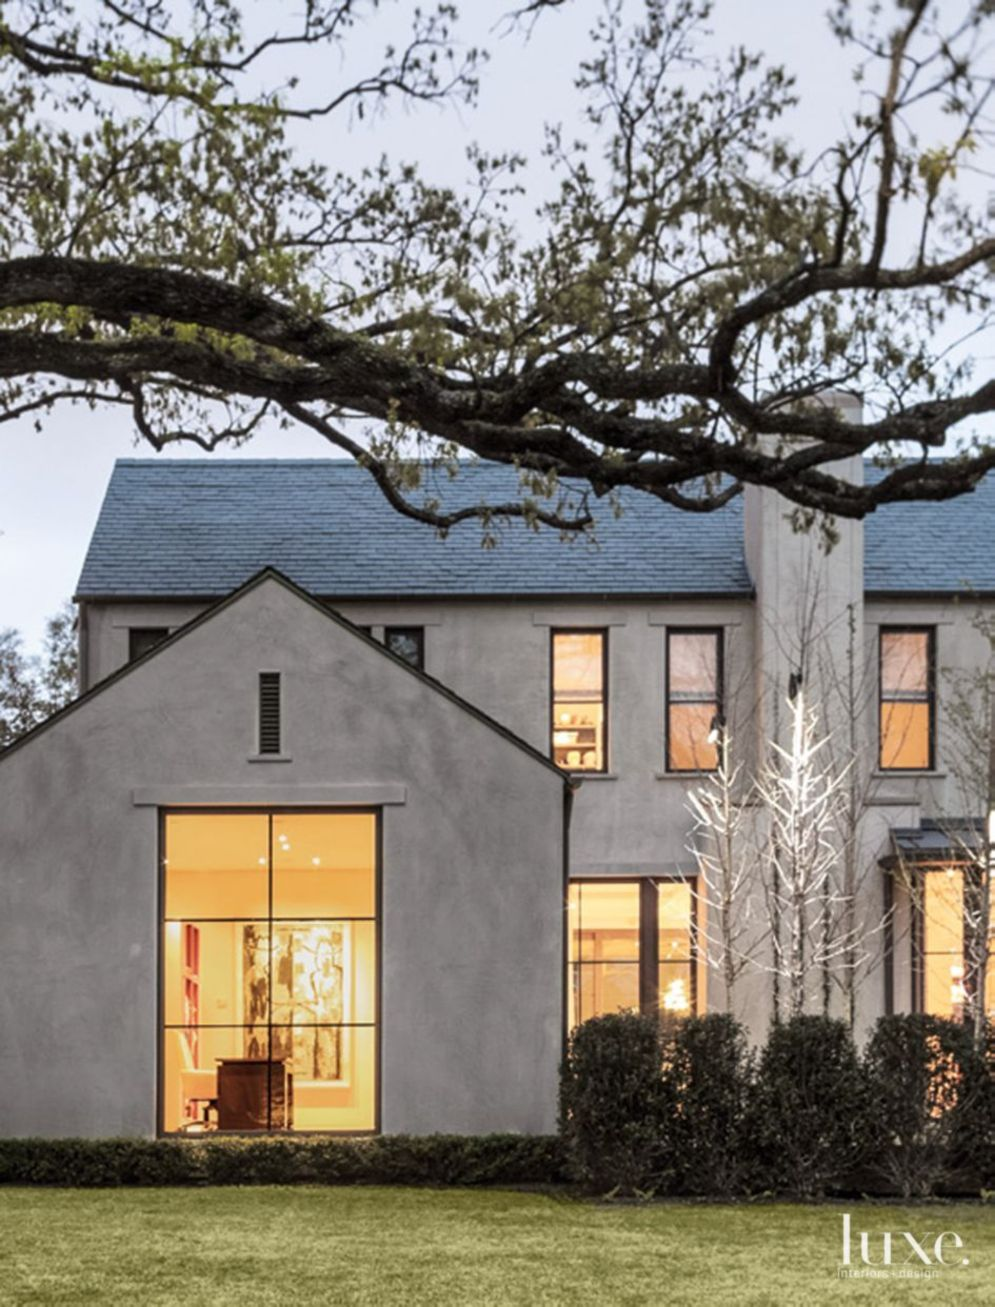 Modern house with new farmhouse exterior design pulling out country charm and warm welcoming display Image 25